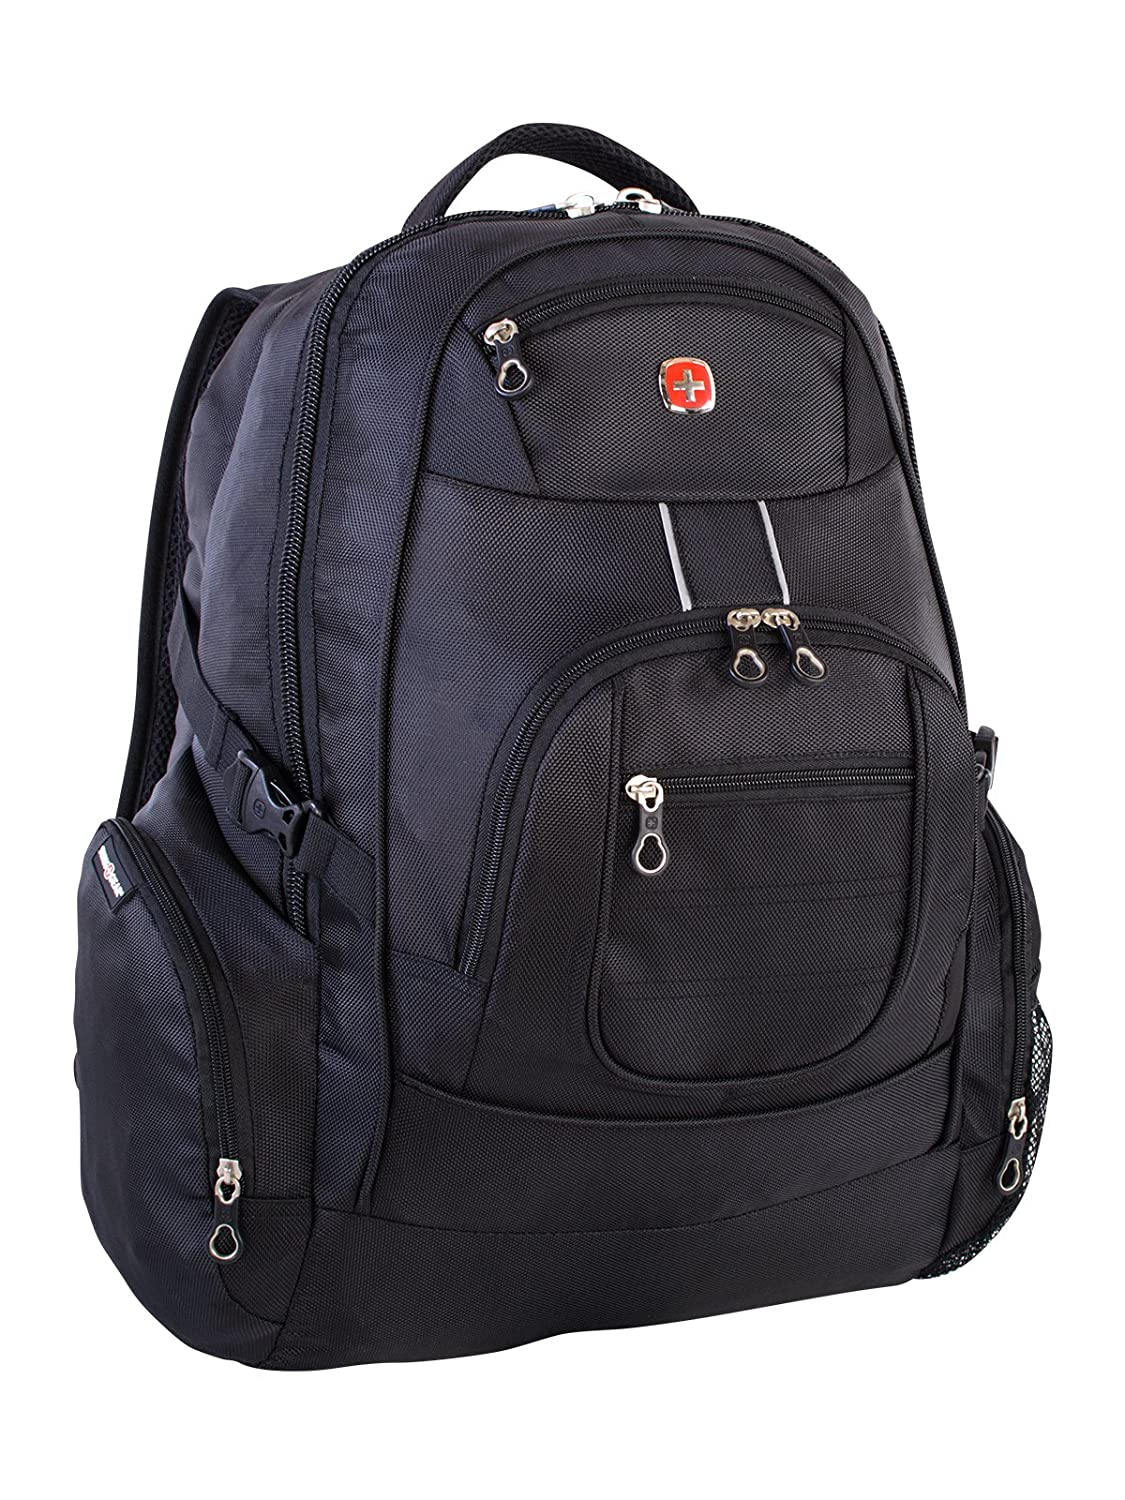 Swiss Gear International Carry-On Size Laptop Backpack - Holds Up to 17.3-Inch Laptop, Black Holiday Luggage SWA2449009